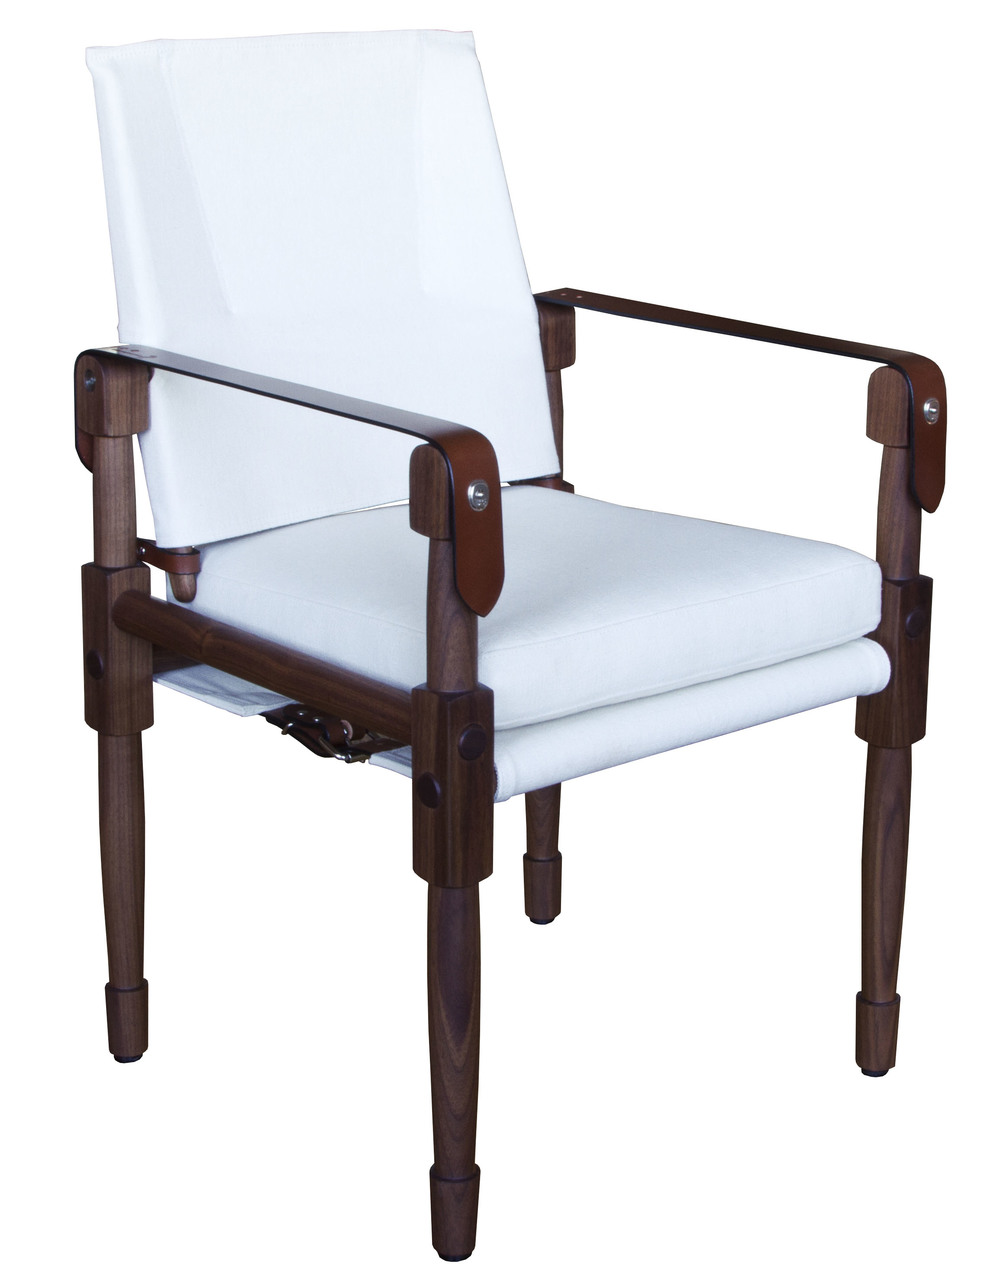 Chatwin Dining/Desk Chair  Oiled walnut with hemp canvas: natural and saddle English bridle leather strapping